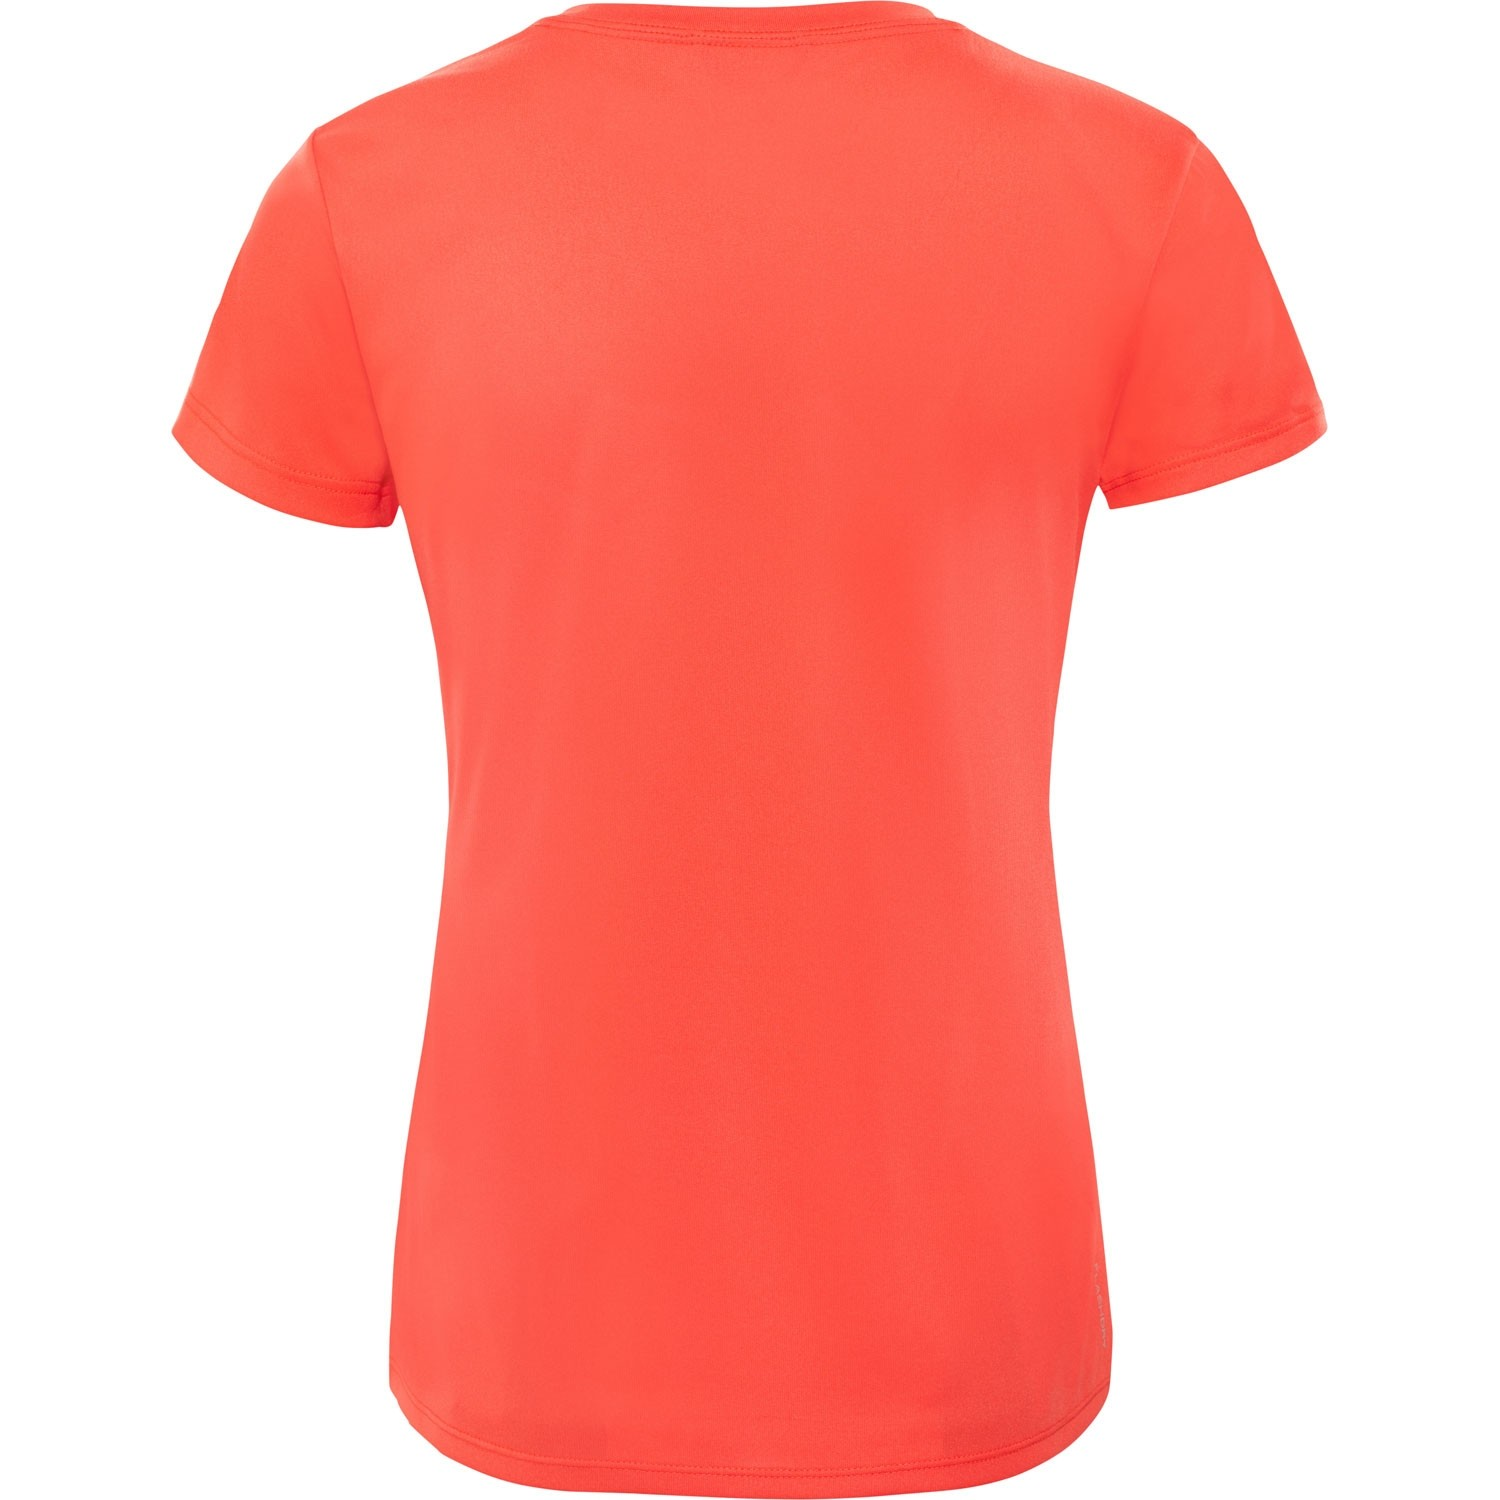 The North Face Reaxion Amp Crew Women's T-Shirt - Juicy Red/TNF White